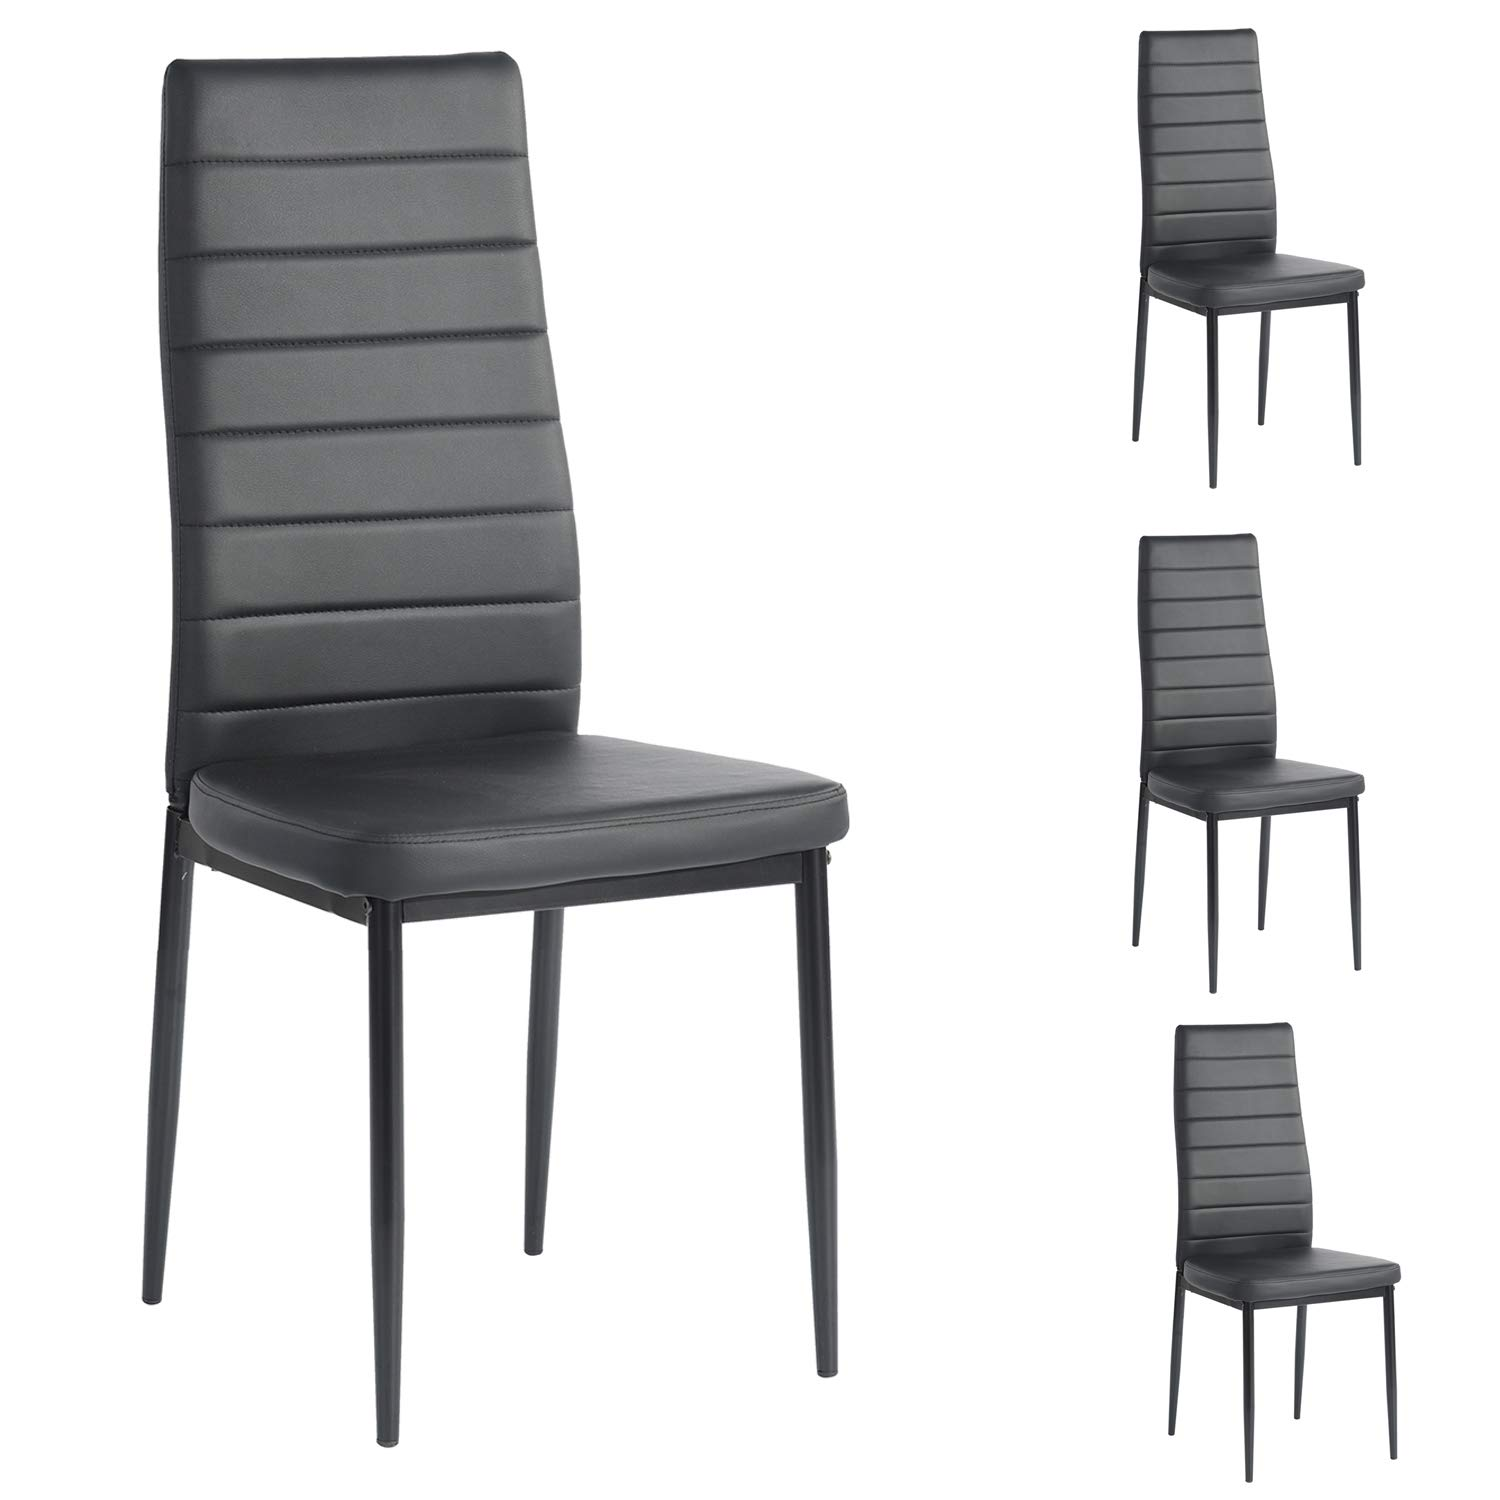 CDM product Ihouse Set of 4 Dining Side Chairs Fabric Cushion Kitchen Chairs with Sturdy Metal Legs for Dining Room, Living Room big image